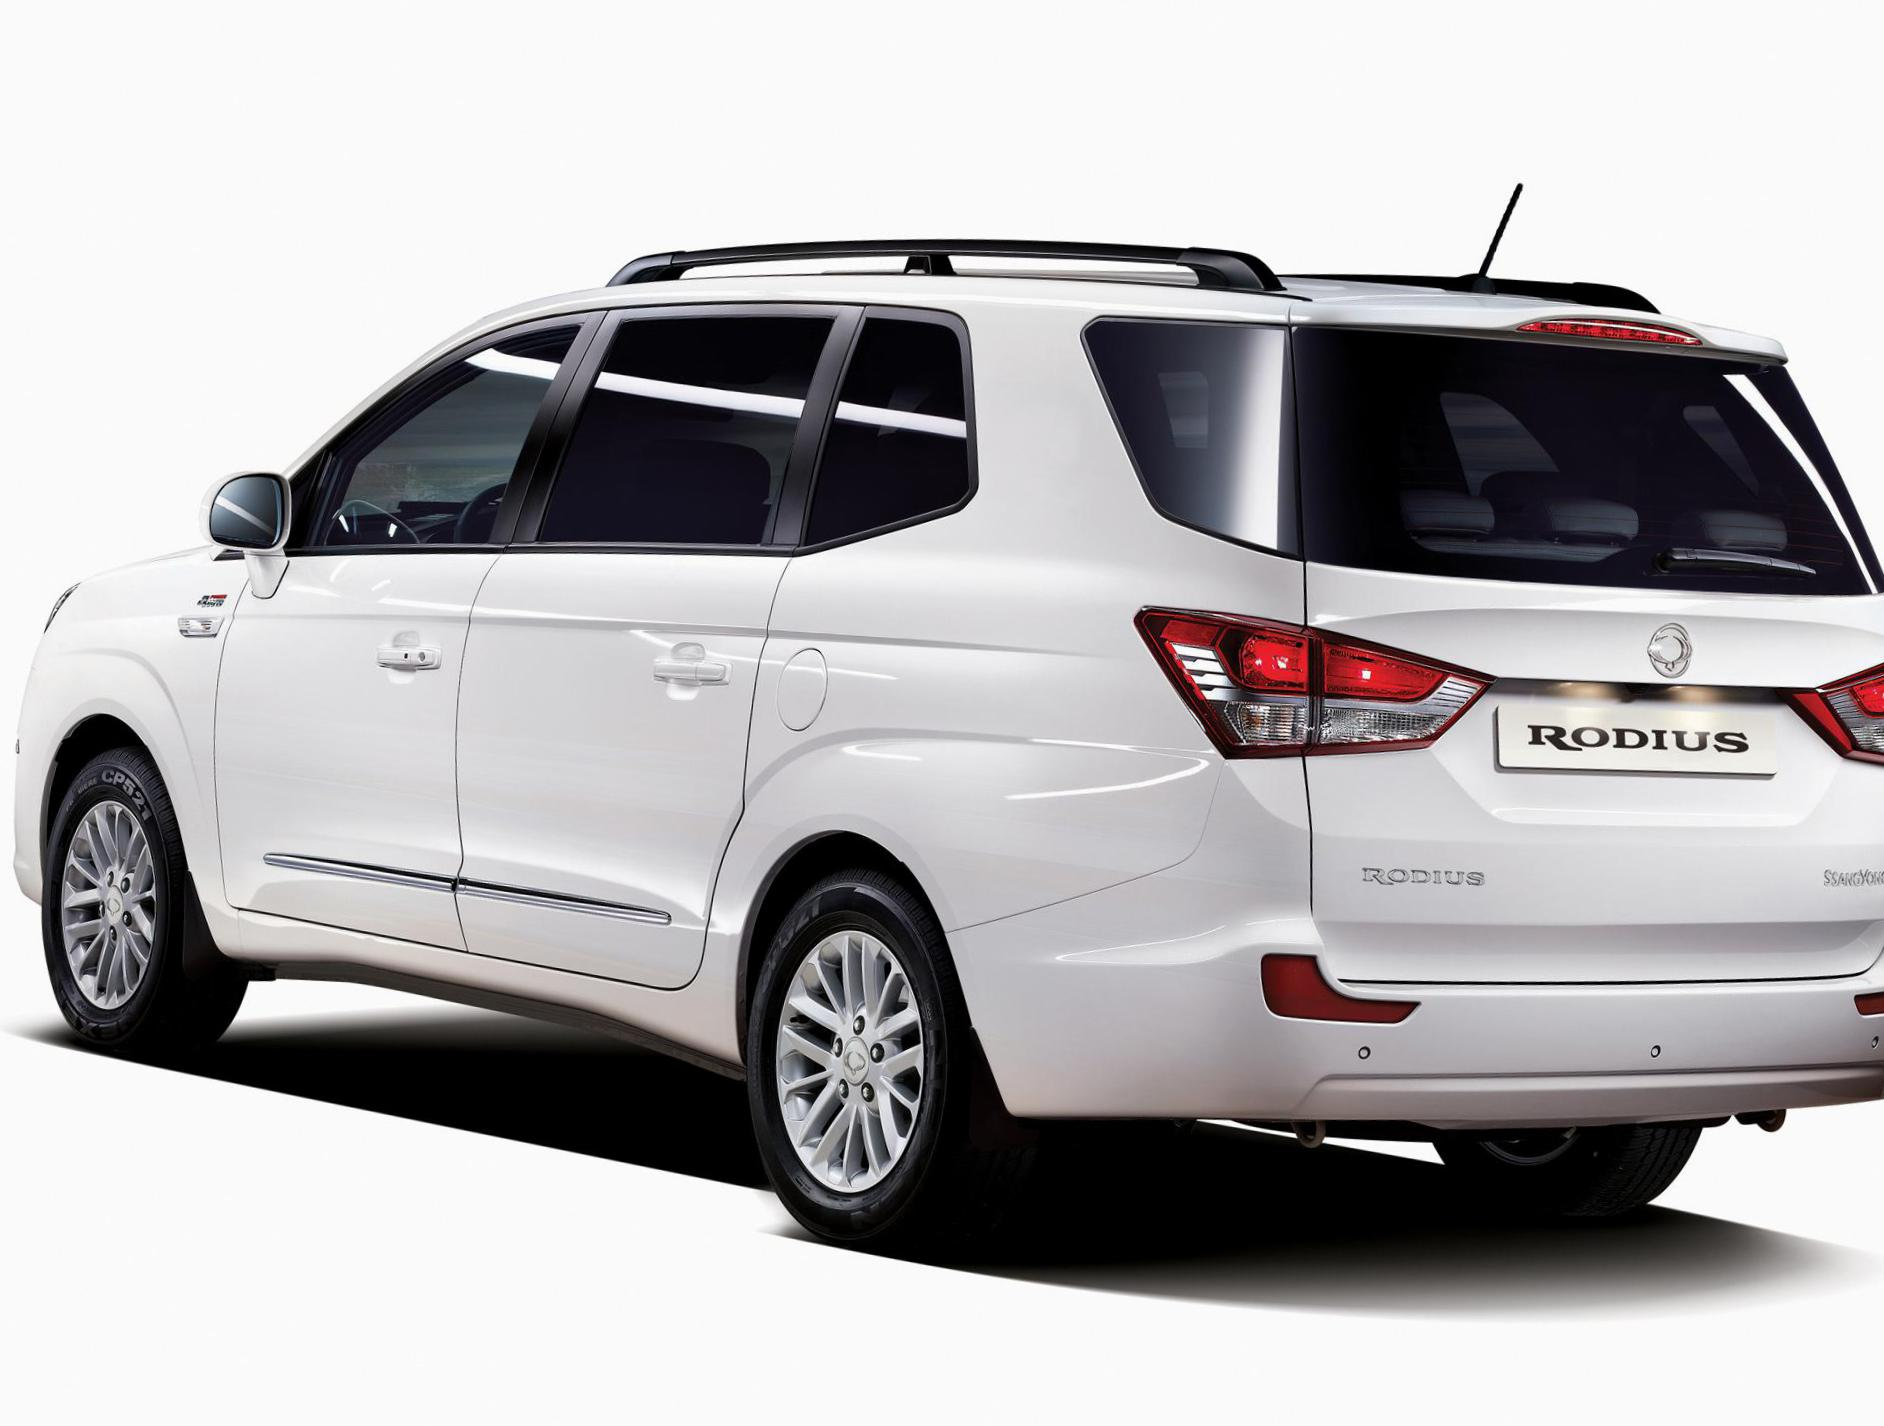 SsangYong Rodius review hatchback